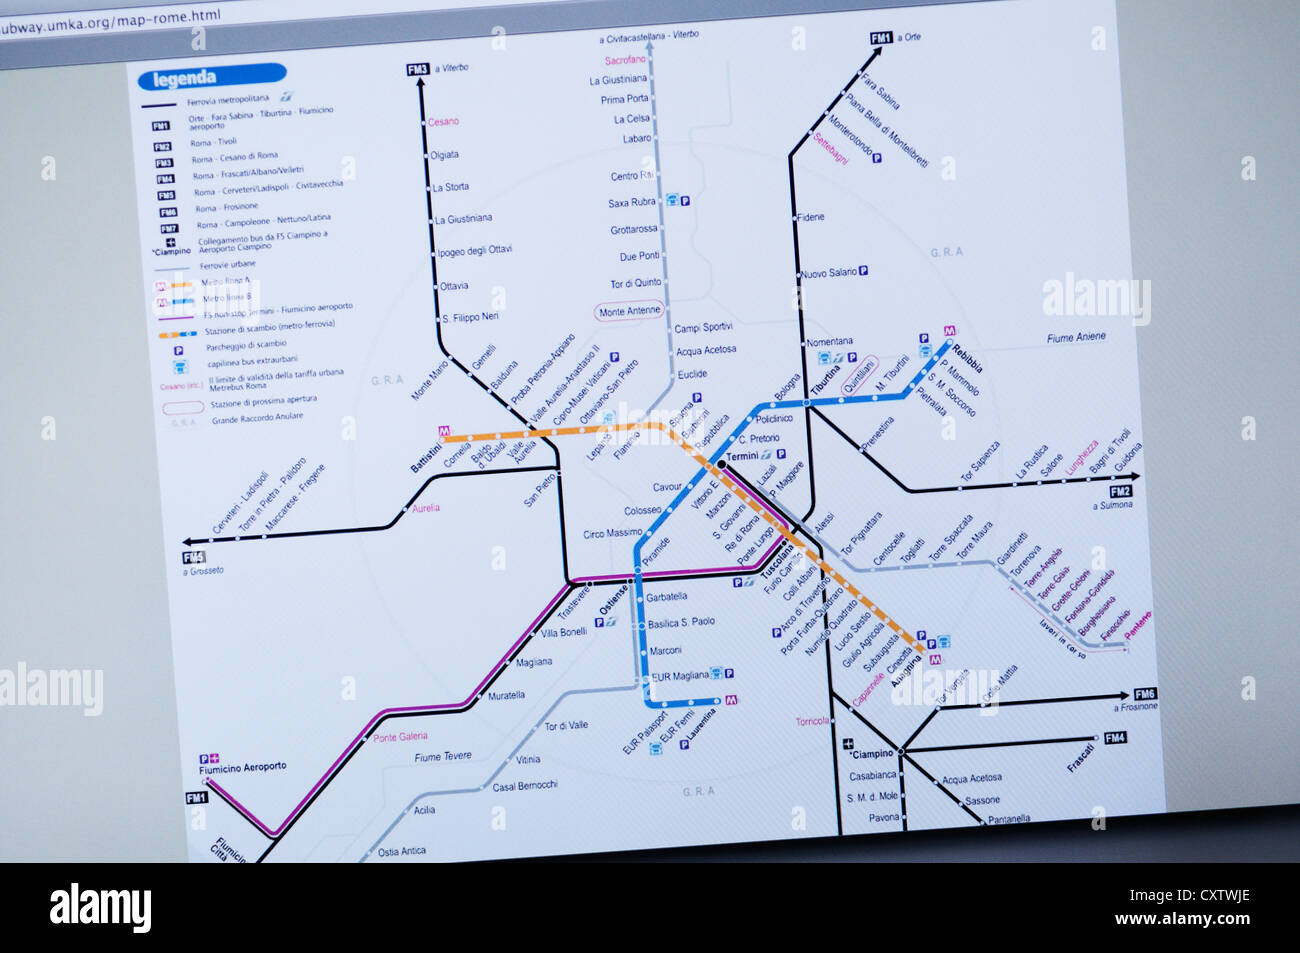 What The Roman Empire Would Look Like If It Was A Subway Map.Rome Metro Website Subway Map Information Stock Photo 50948758